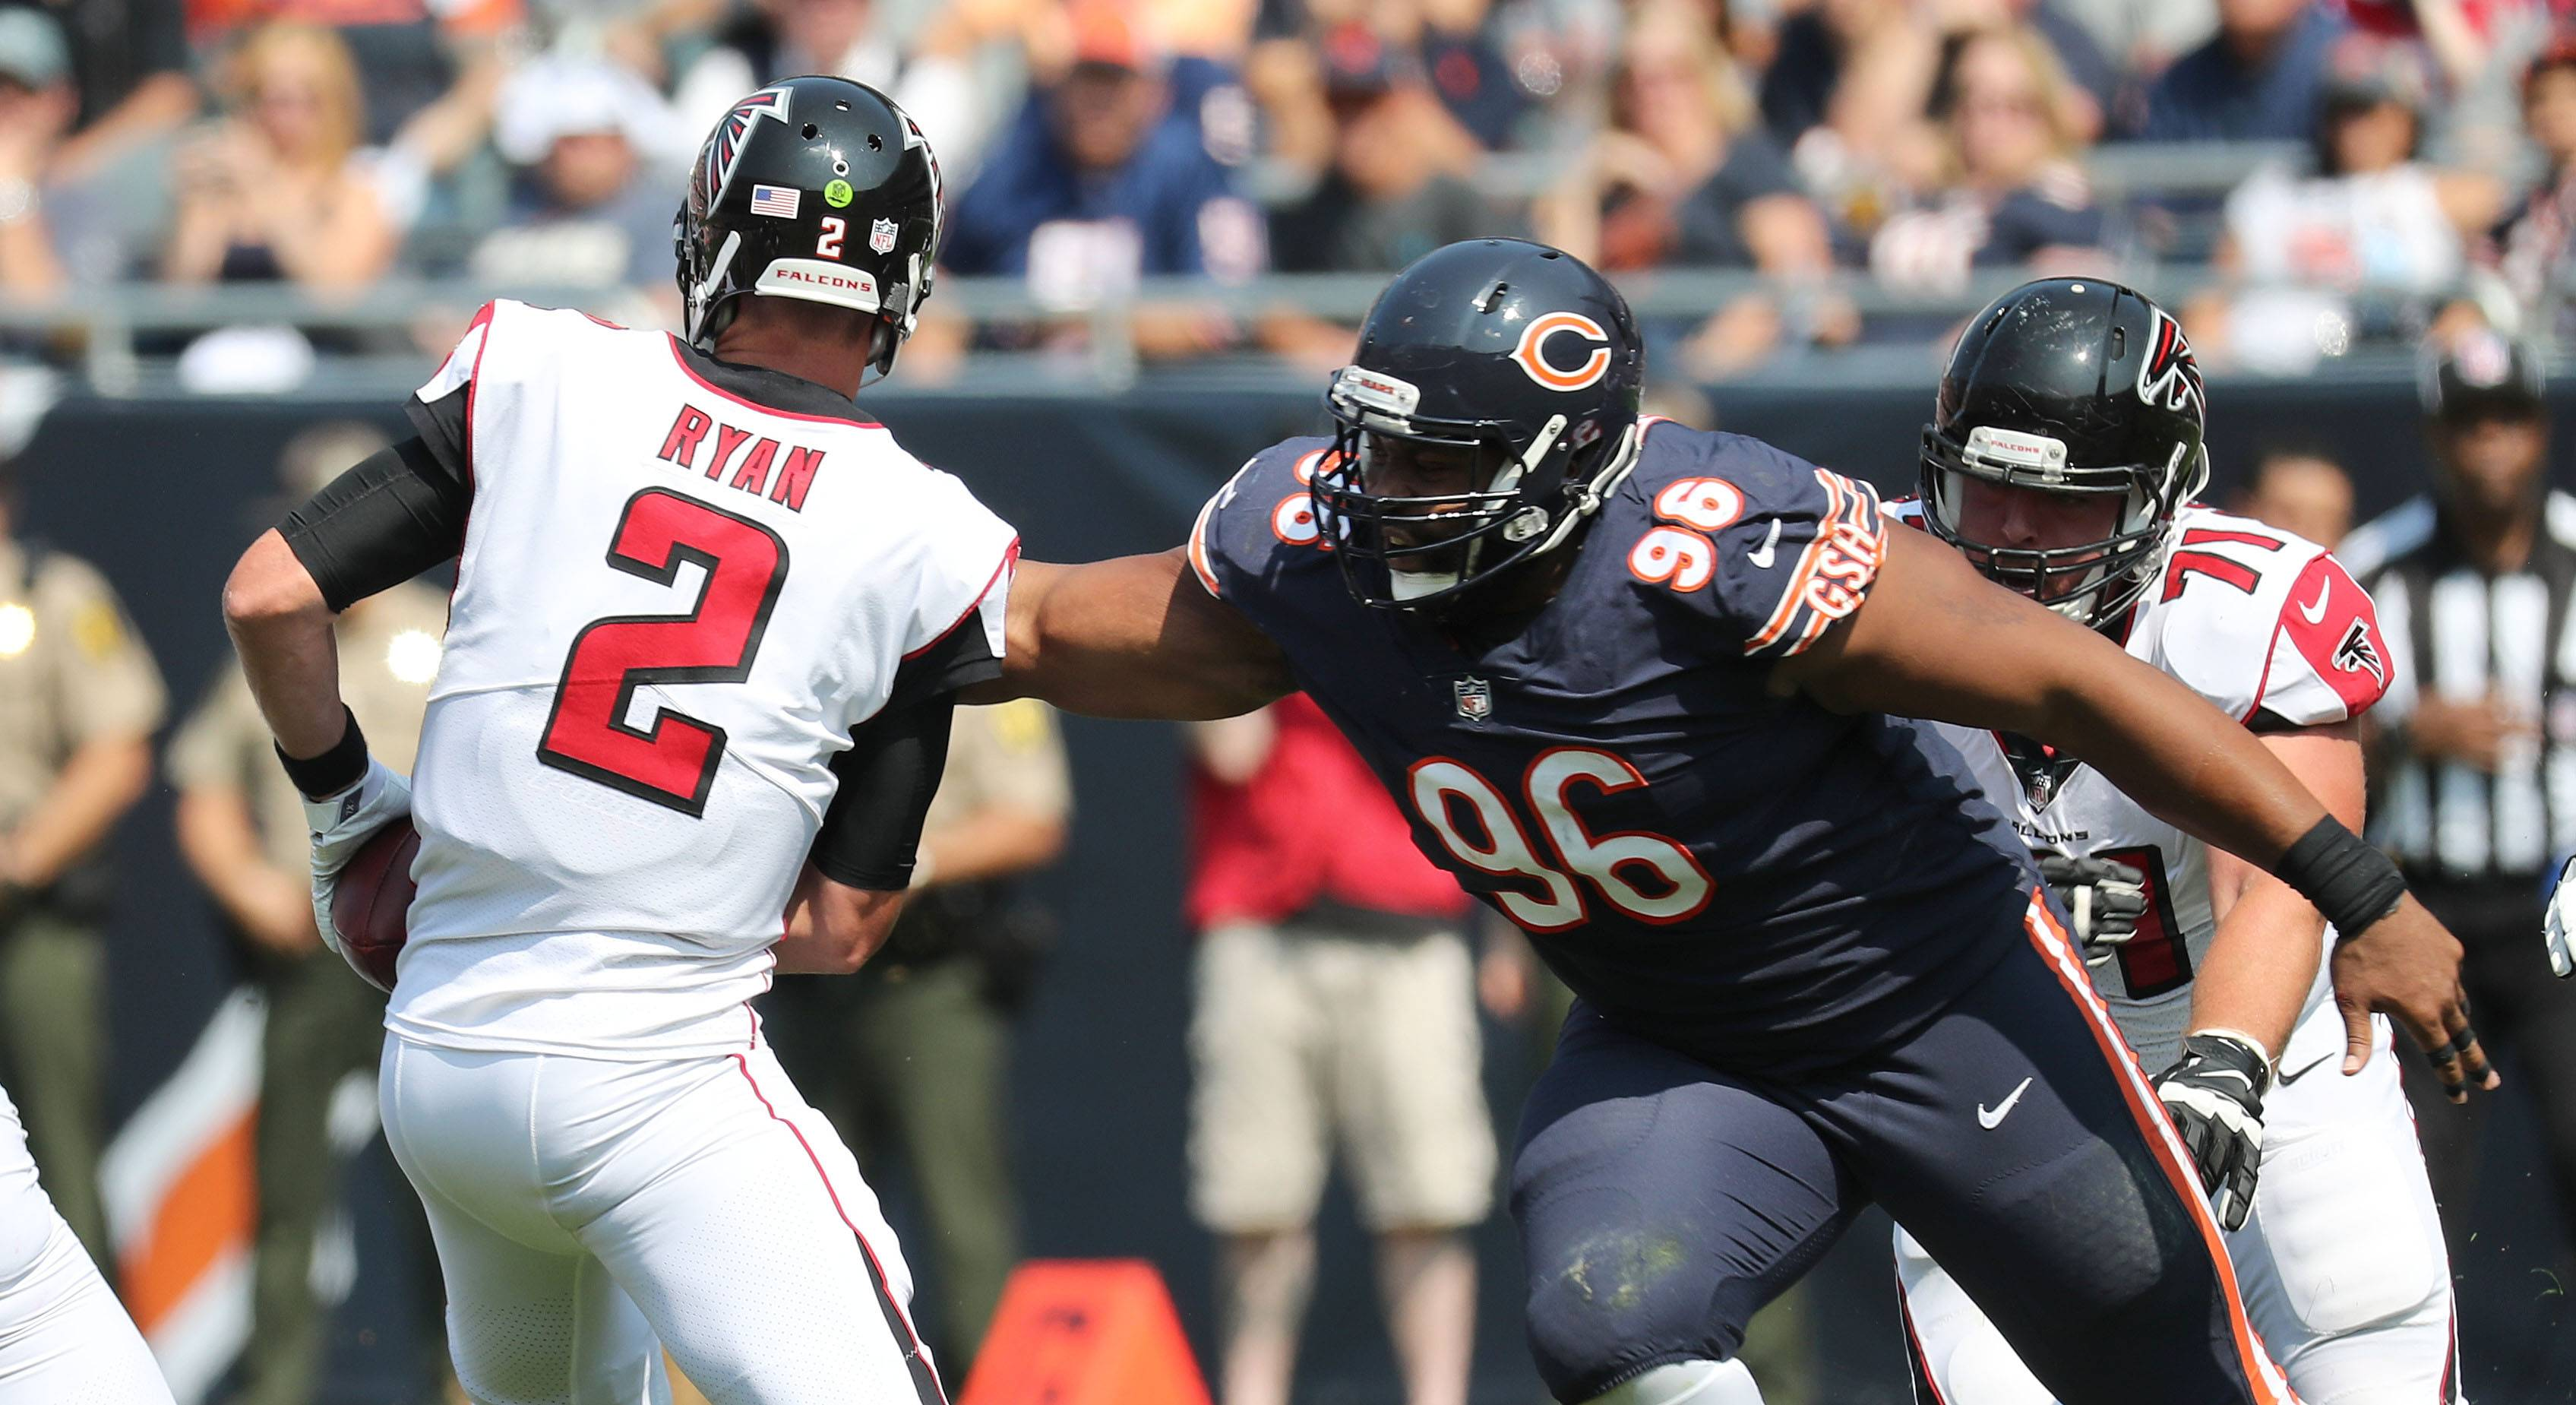 Bears' defense not too bad, except for one big blip